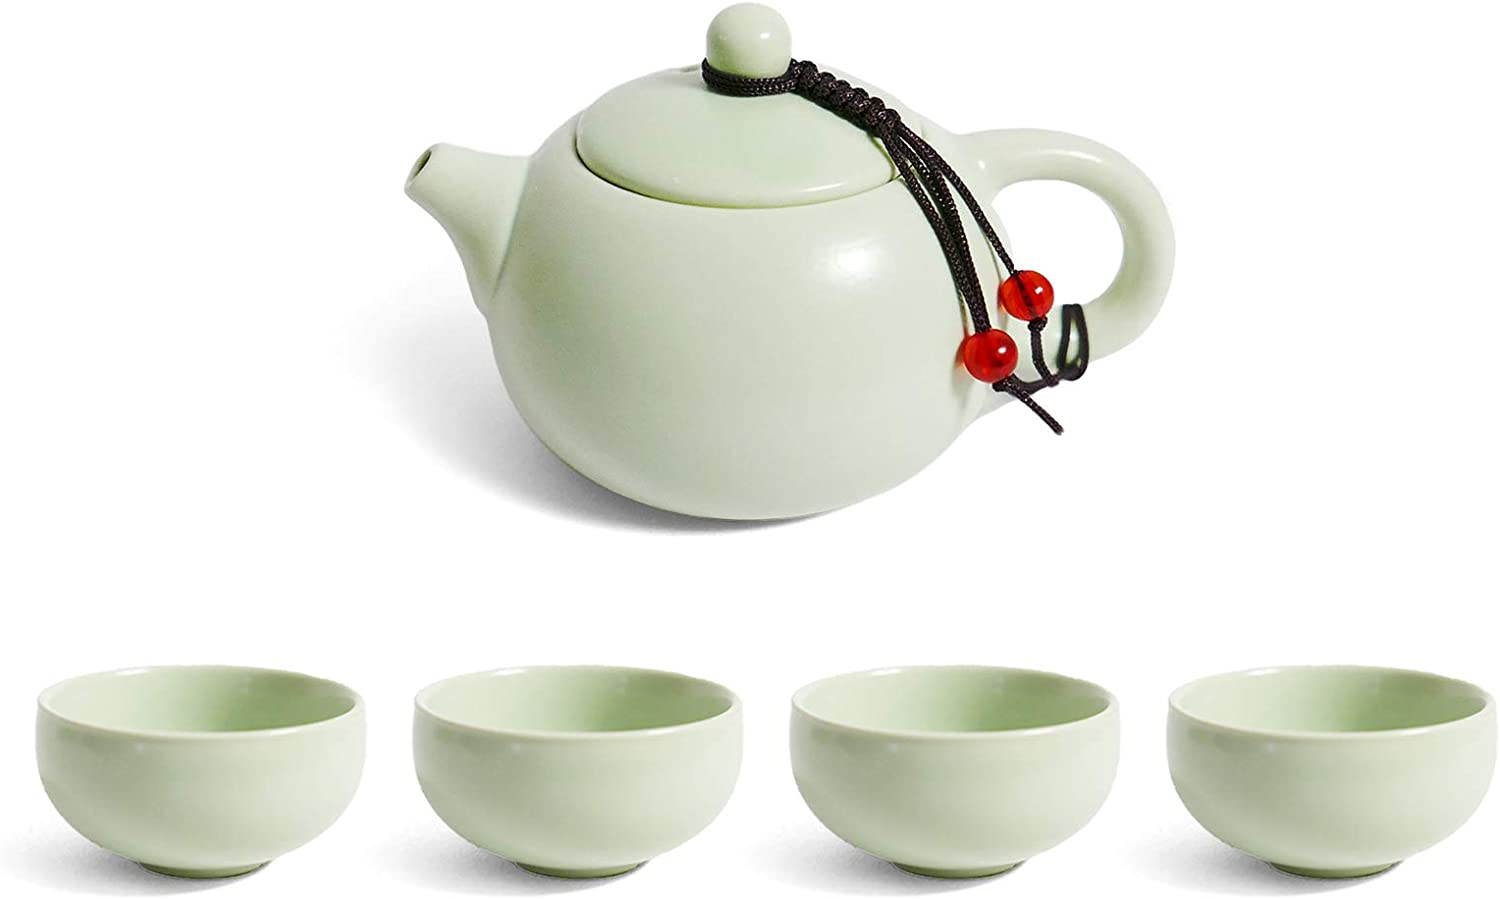 Japanese Max 45% OFF Mini Tea Max 77% OFF Set for Kungfu Uncle Chinese Tasting Iroh